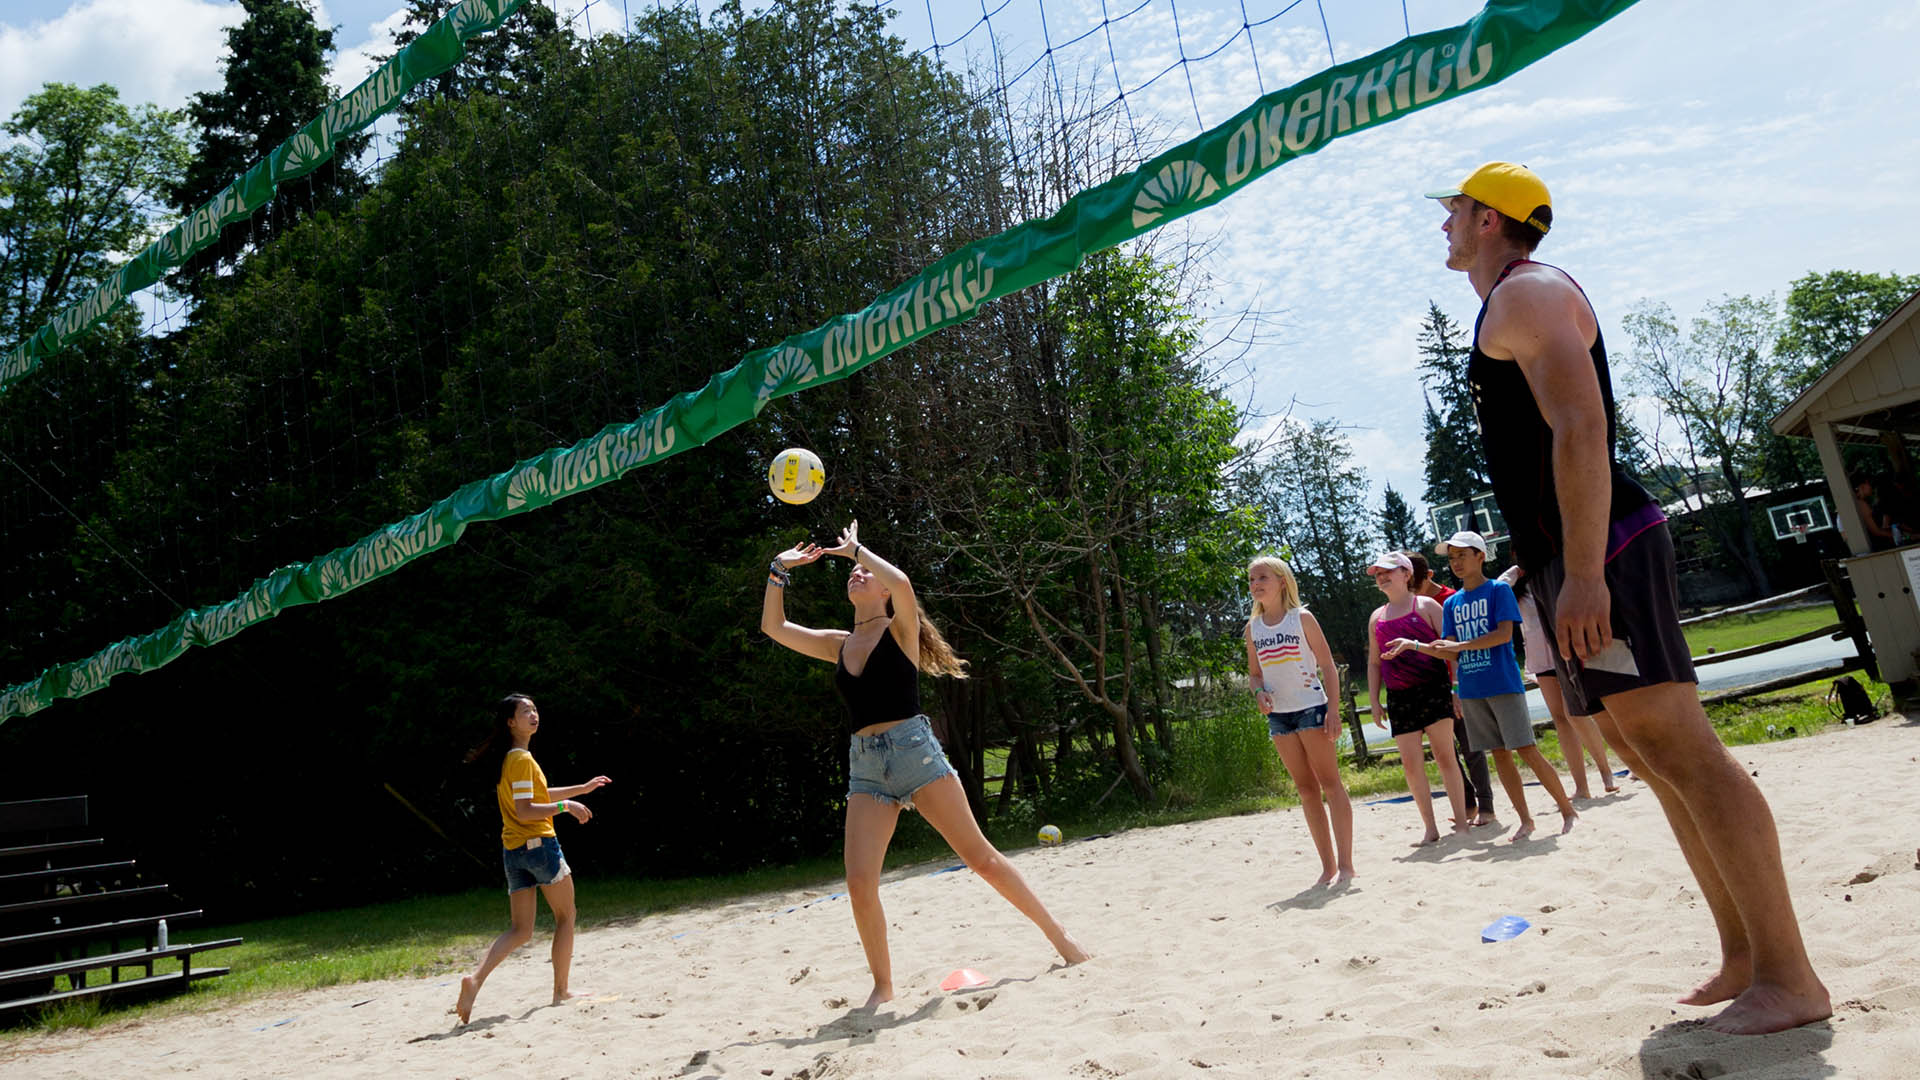 Volleyball is a great outdoor sport at Muskoka Woods